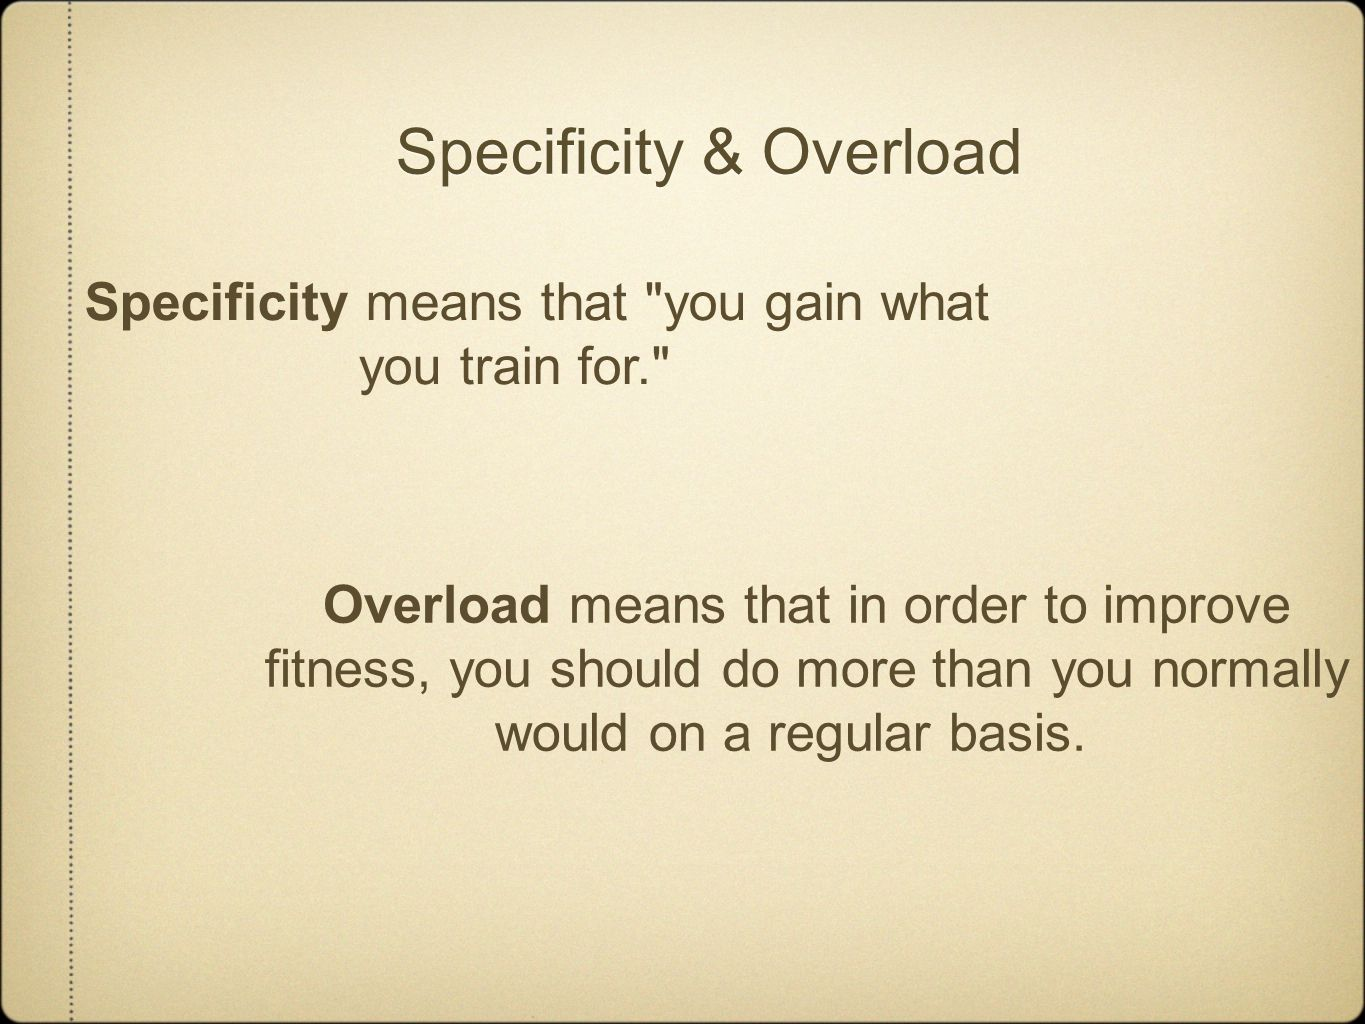 Specificity & Overload Specificity means that you gain what you train for. Overload means that in order to improve fitness, you should do more than you normally would on a regular basis.